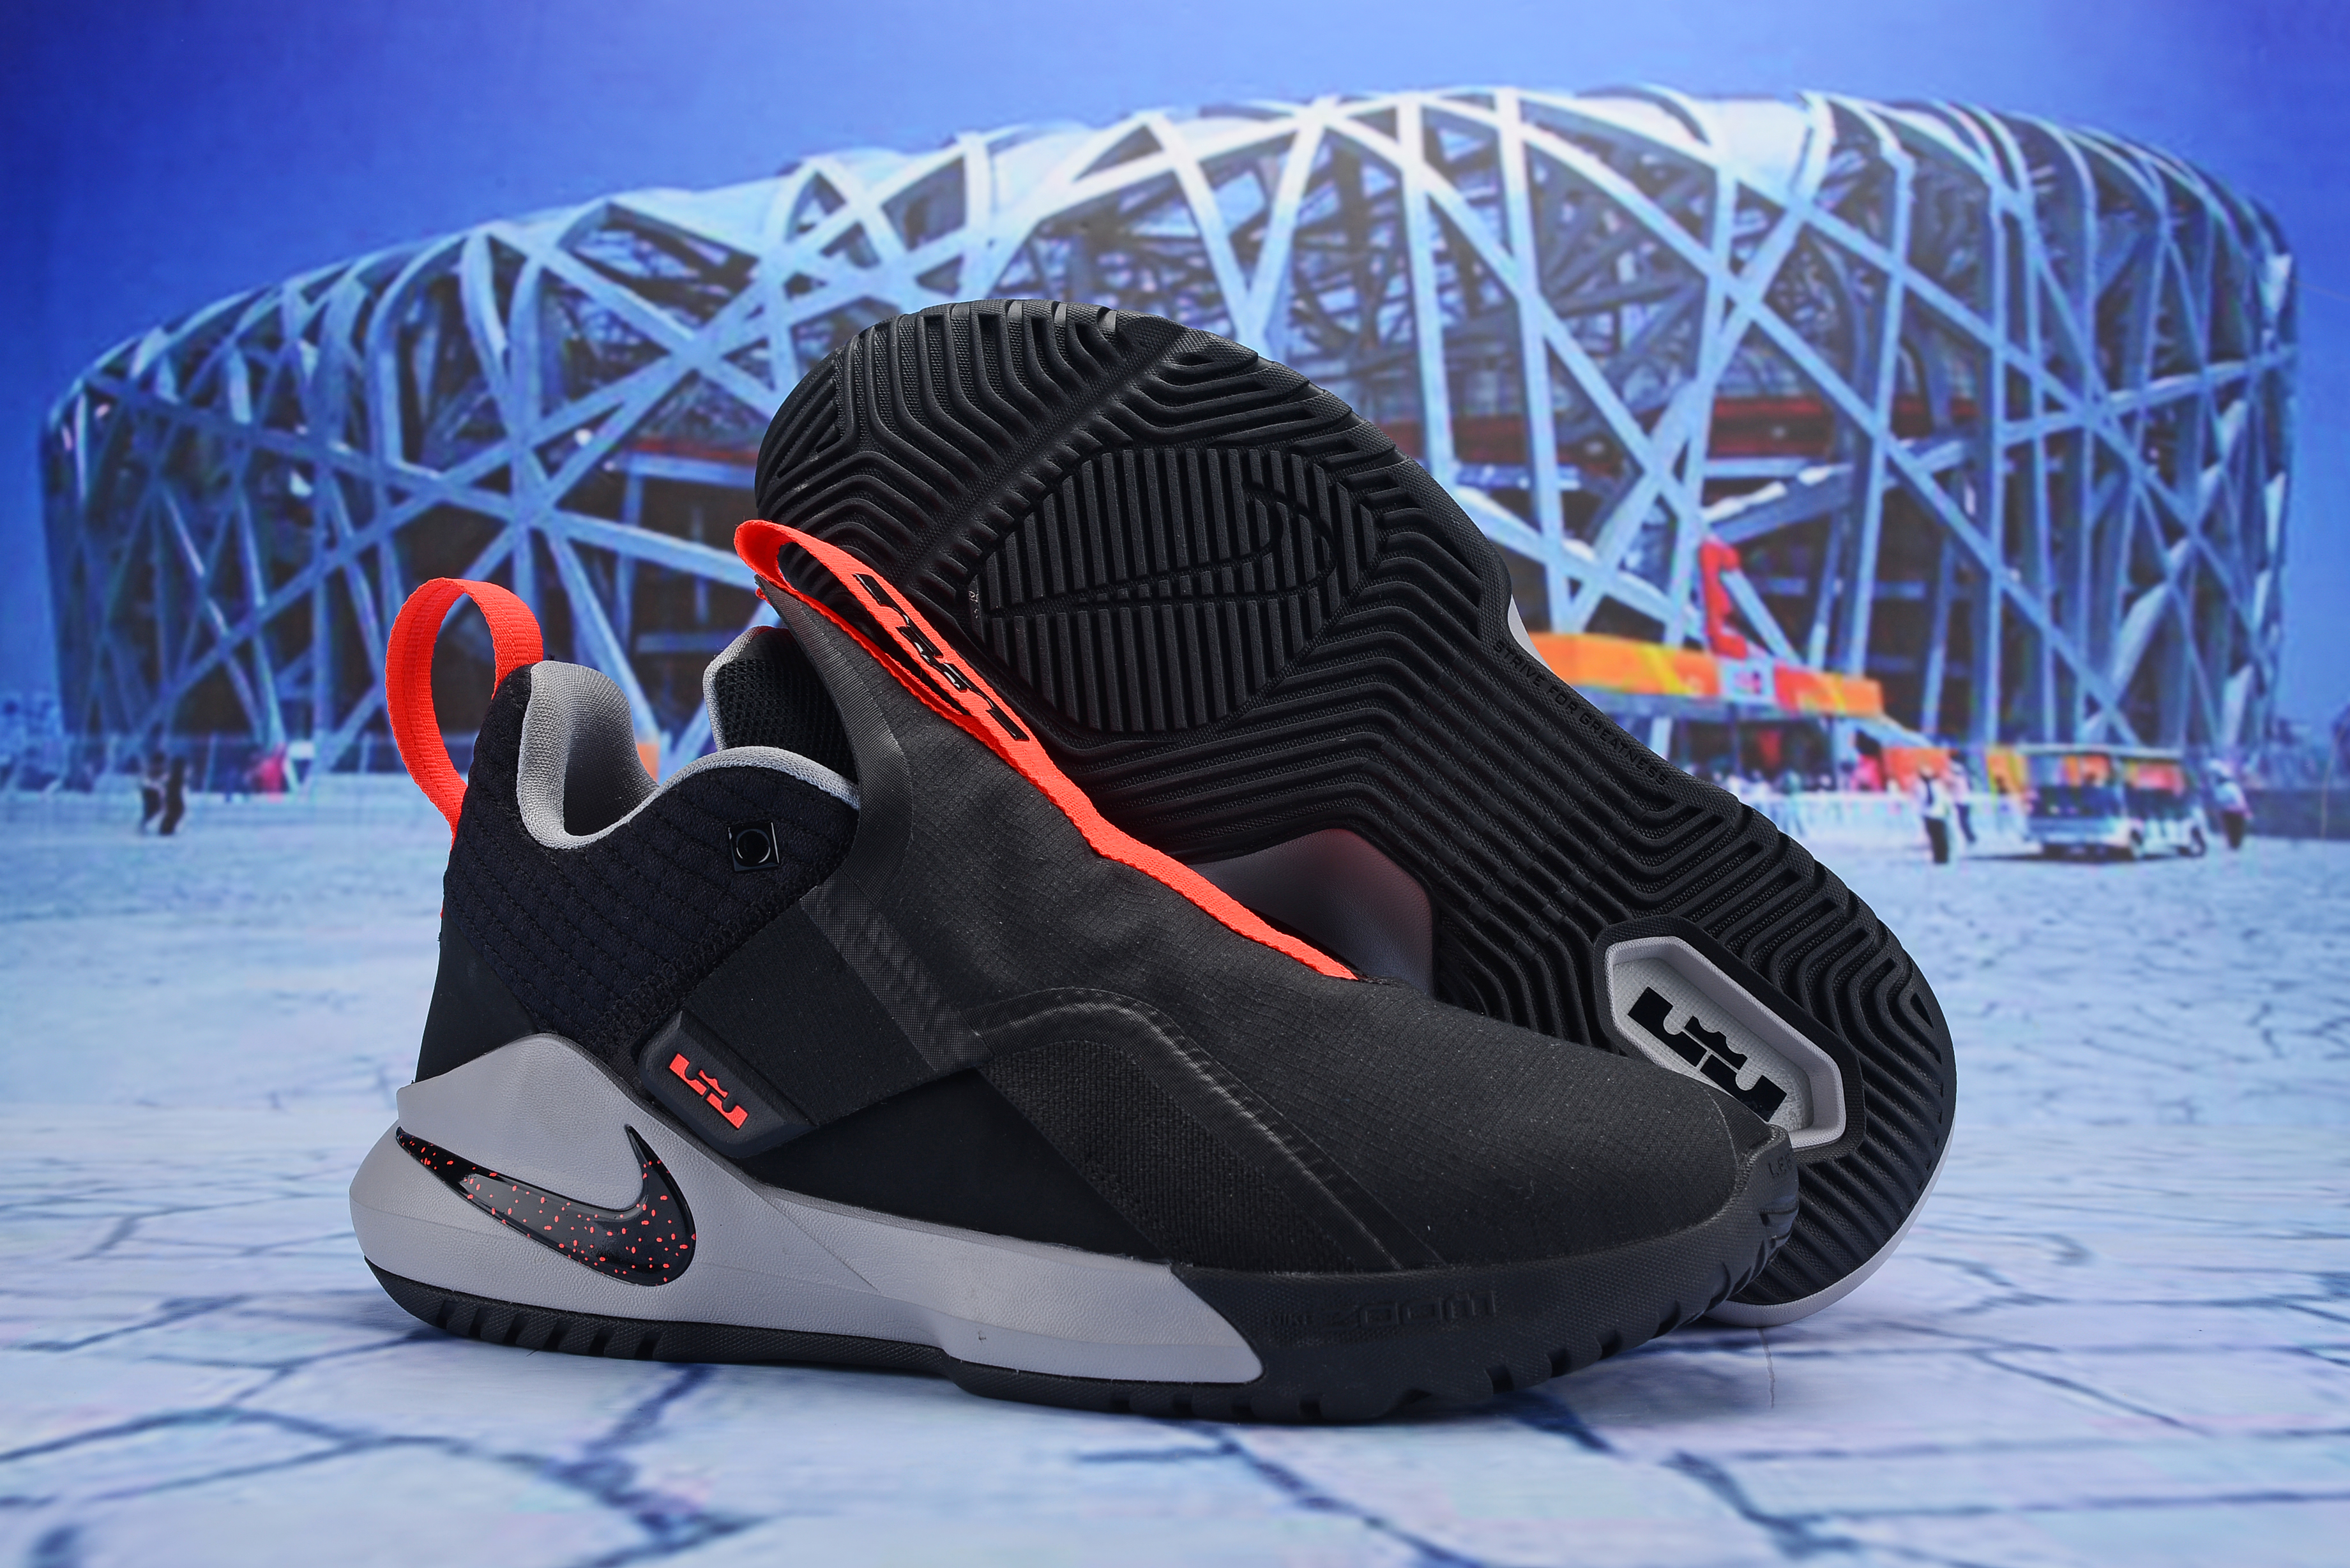 Nike LeBron Ambassador 11 Black Orange Shoes